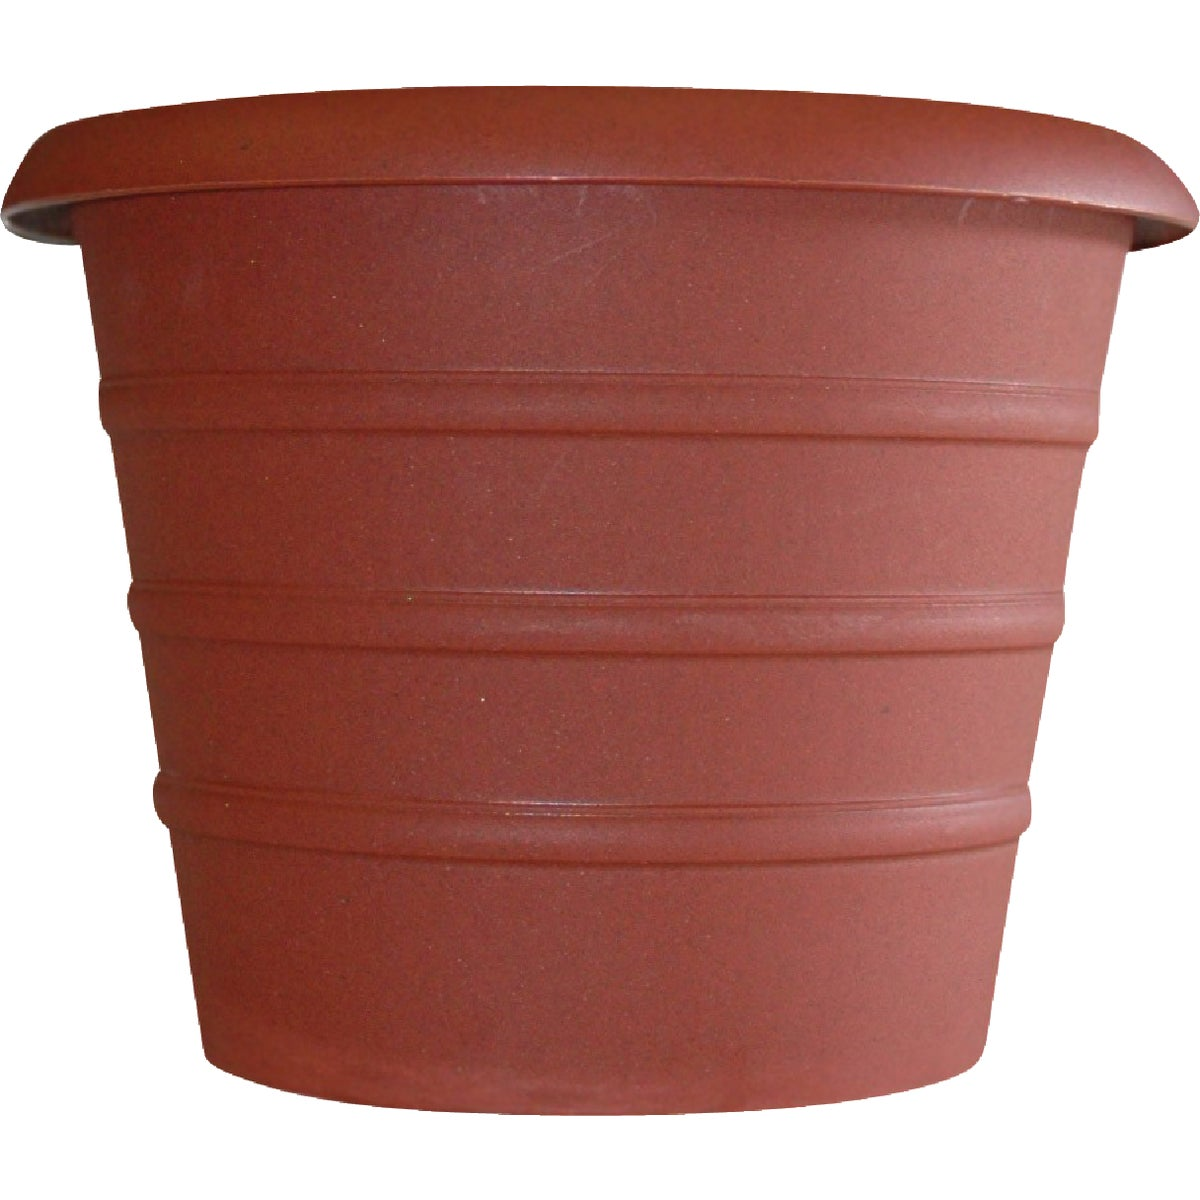 "12""T COTTA MARINA POT - MSA12000E07 by Myers Industries Inc"